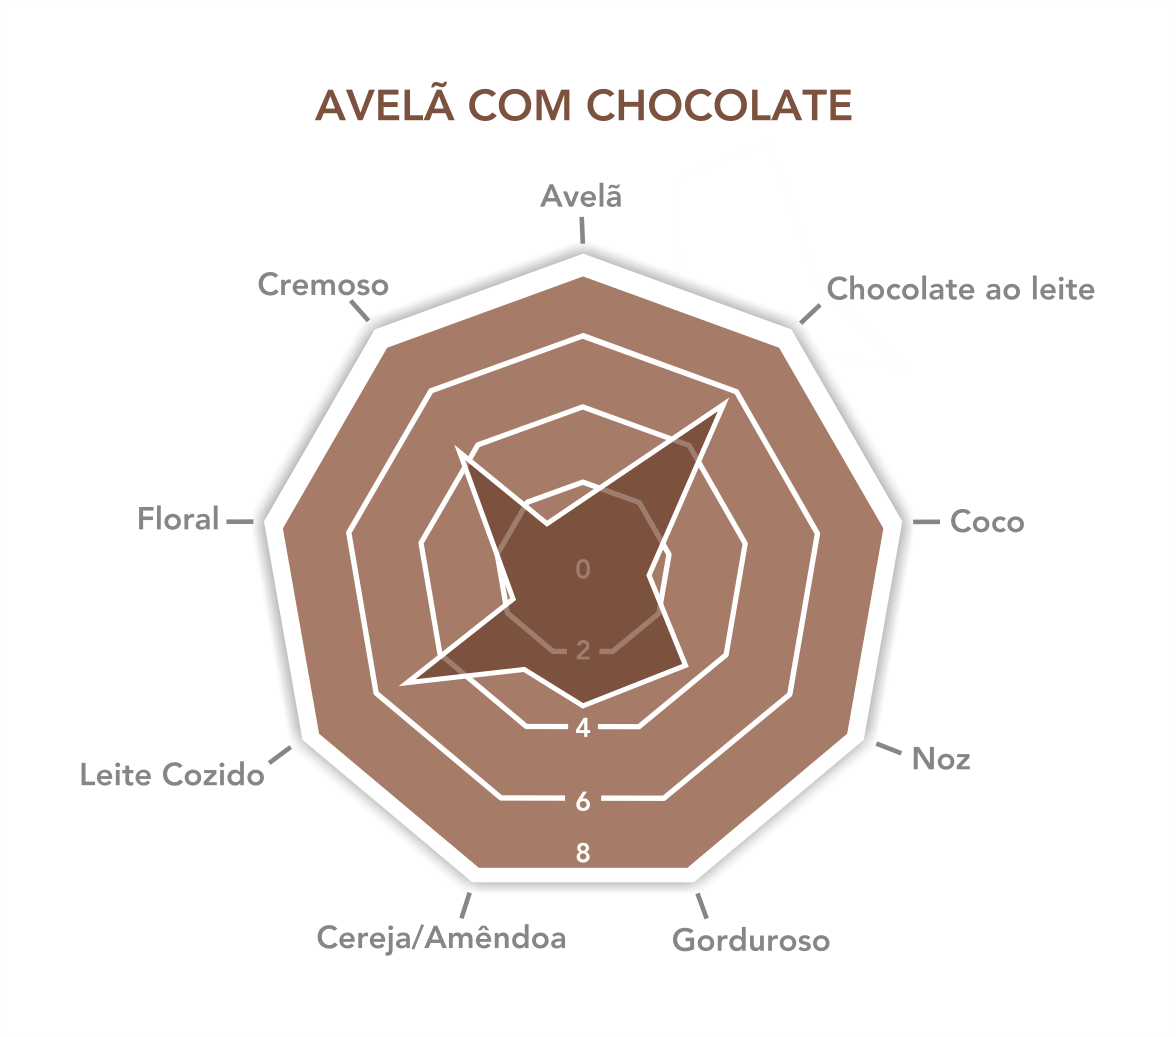 Avelã com Chocolate